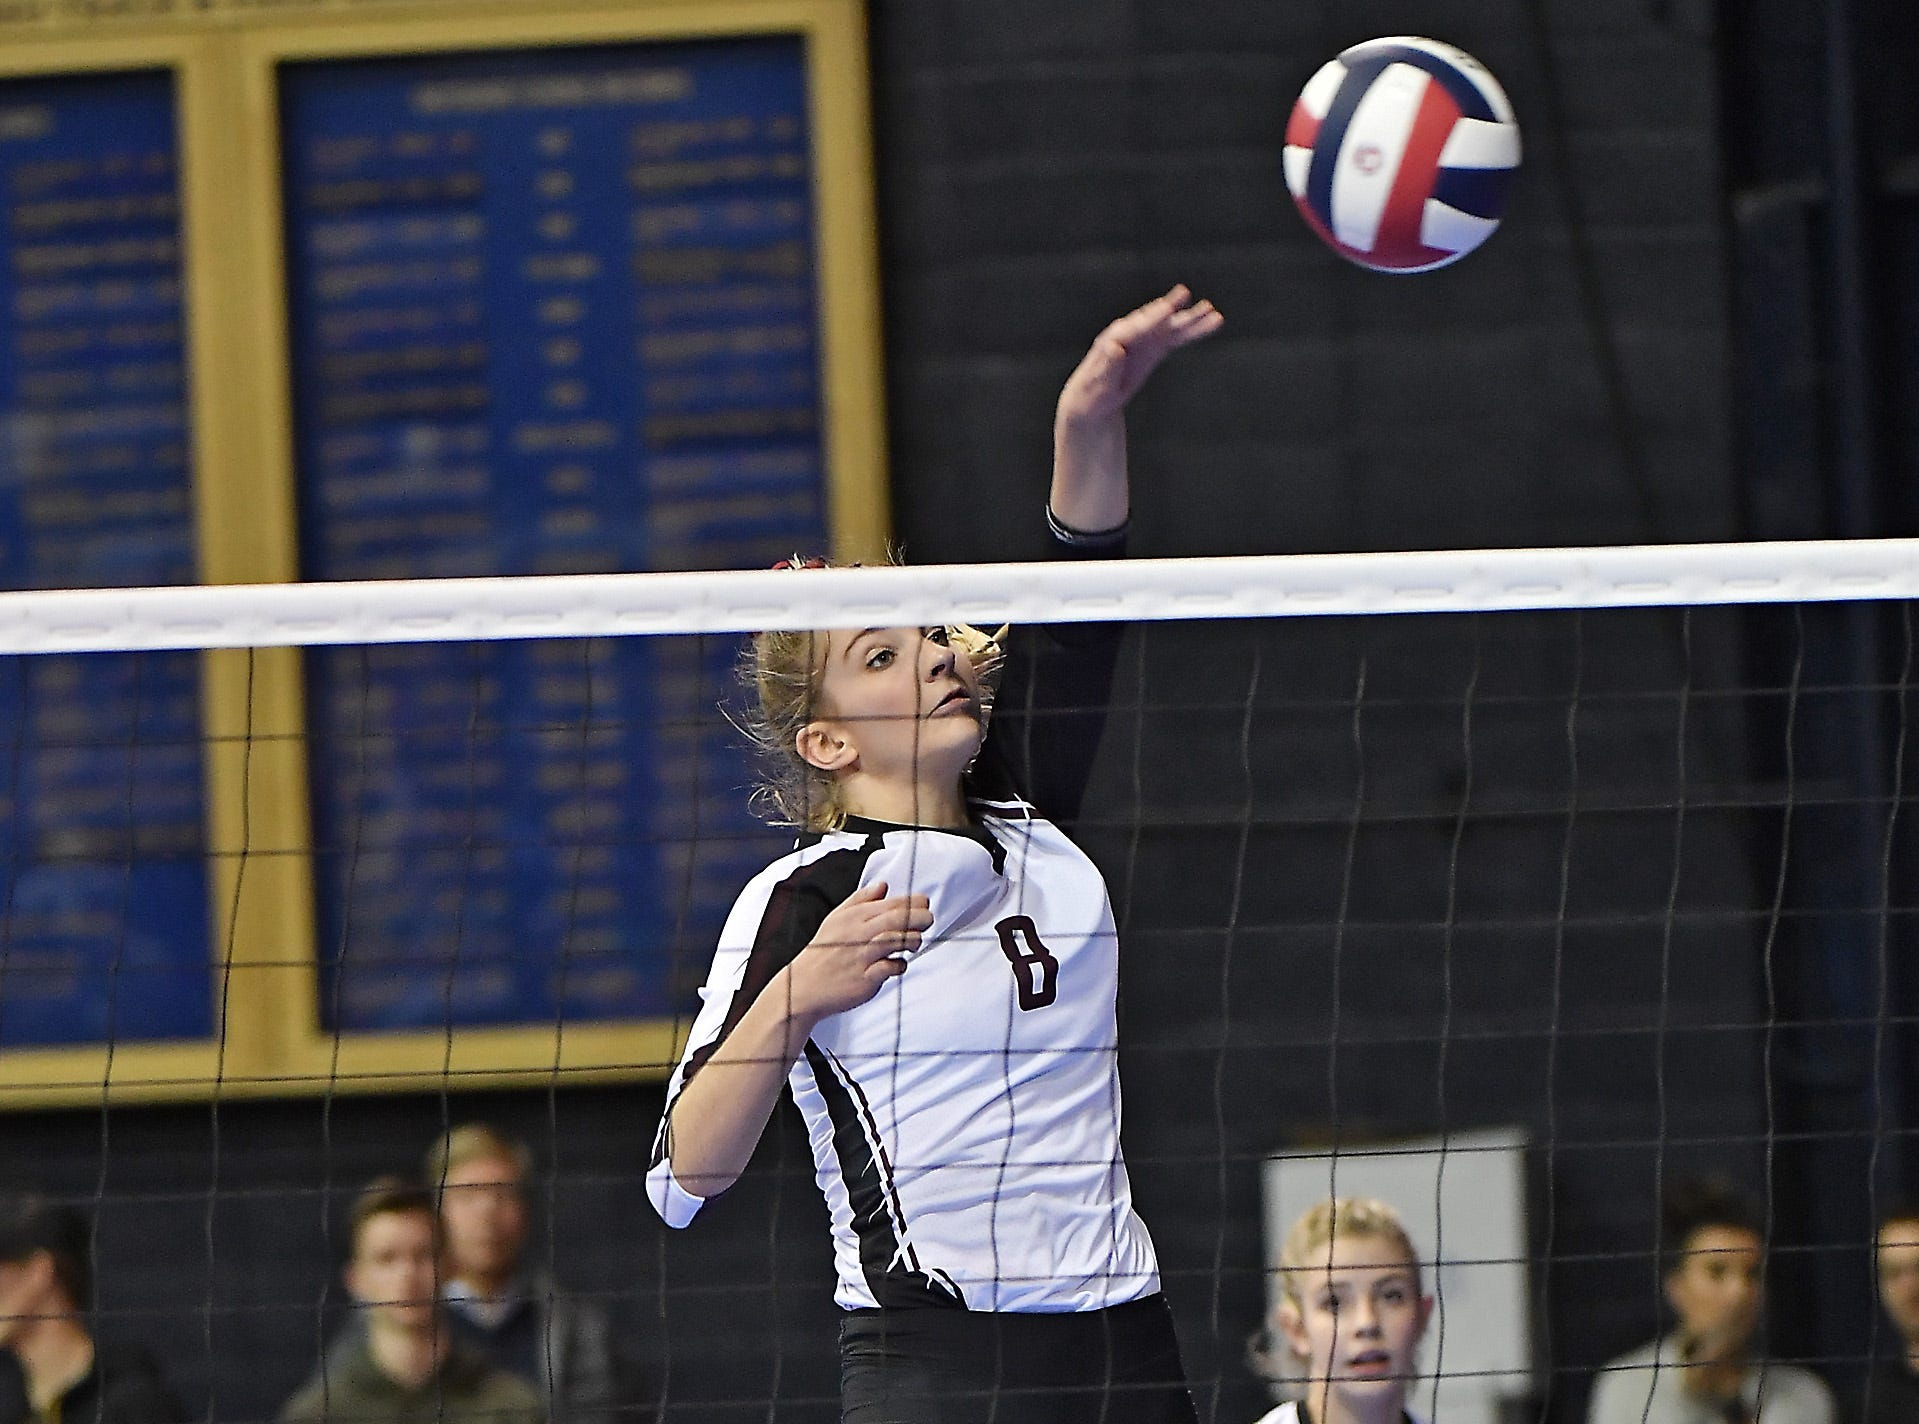 Manhattan Christian's Kierstin Van Kirk attempts a kill during a match with Tri-Cities at the All-Class State Volleyball Tournament at the Brick Breeden Fieldhouse in Bozeman Friday.